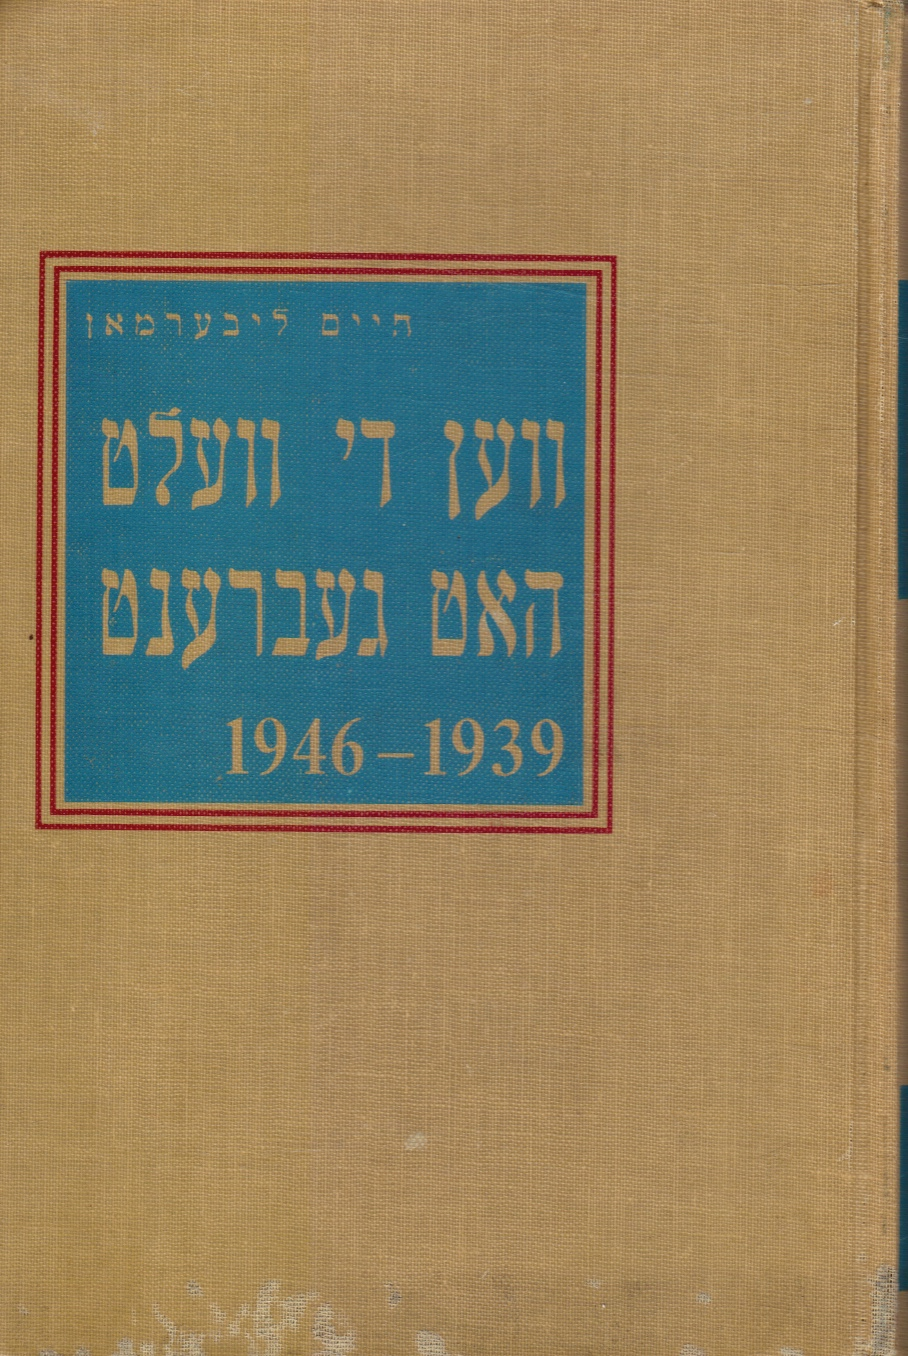 Image for Wen Di Welt Hot Gebrent 1946-1939 (When the World Was Afire) : Second Volume